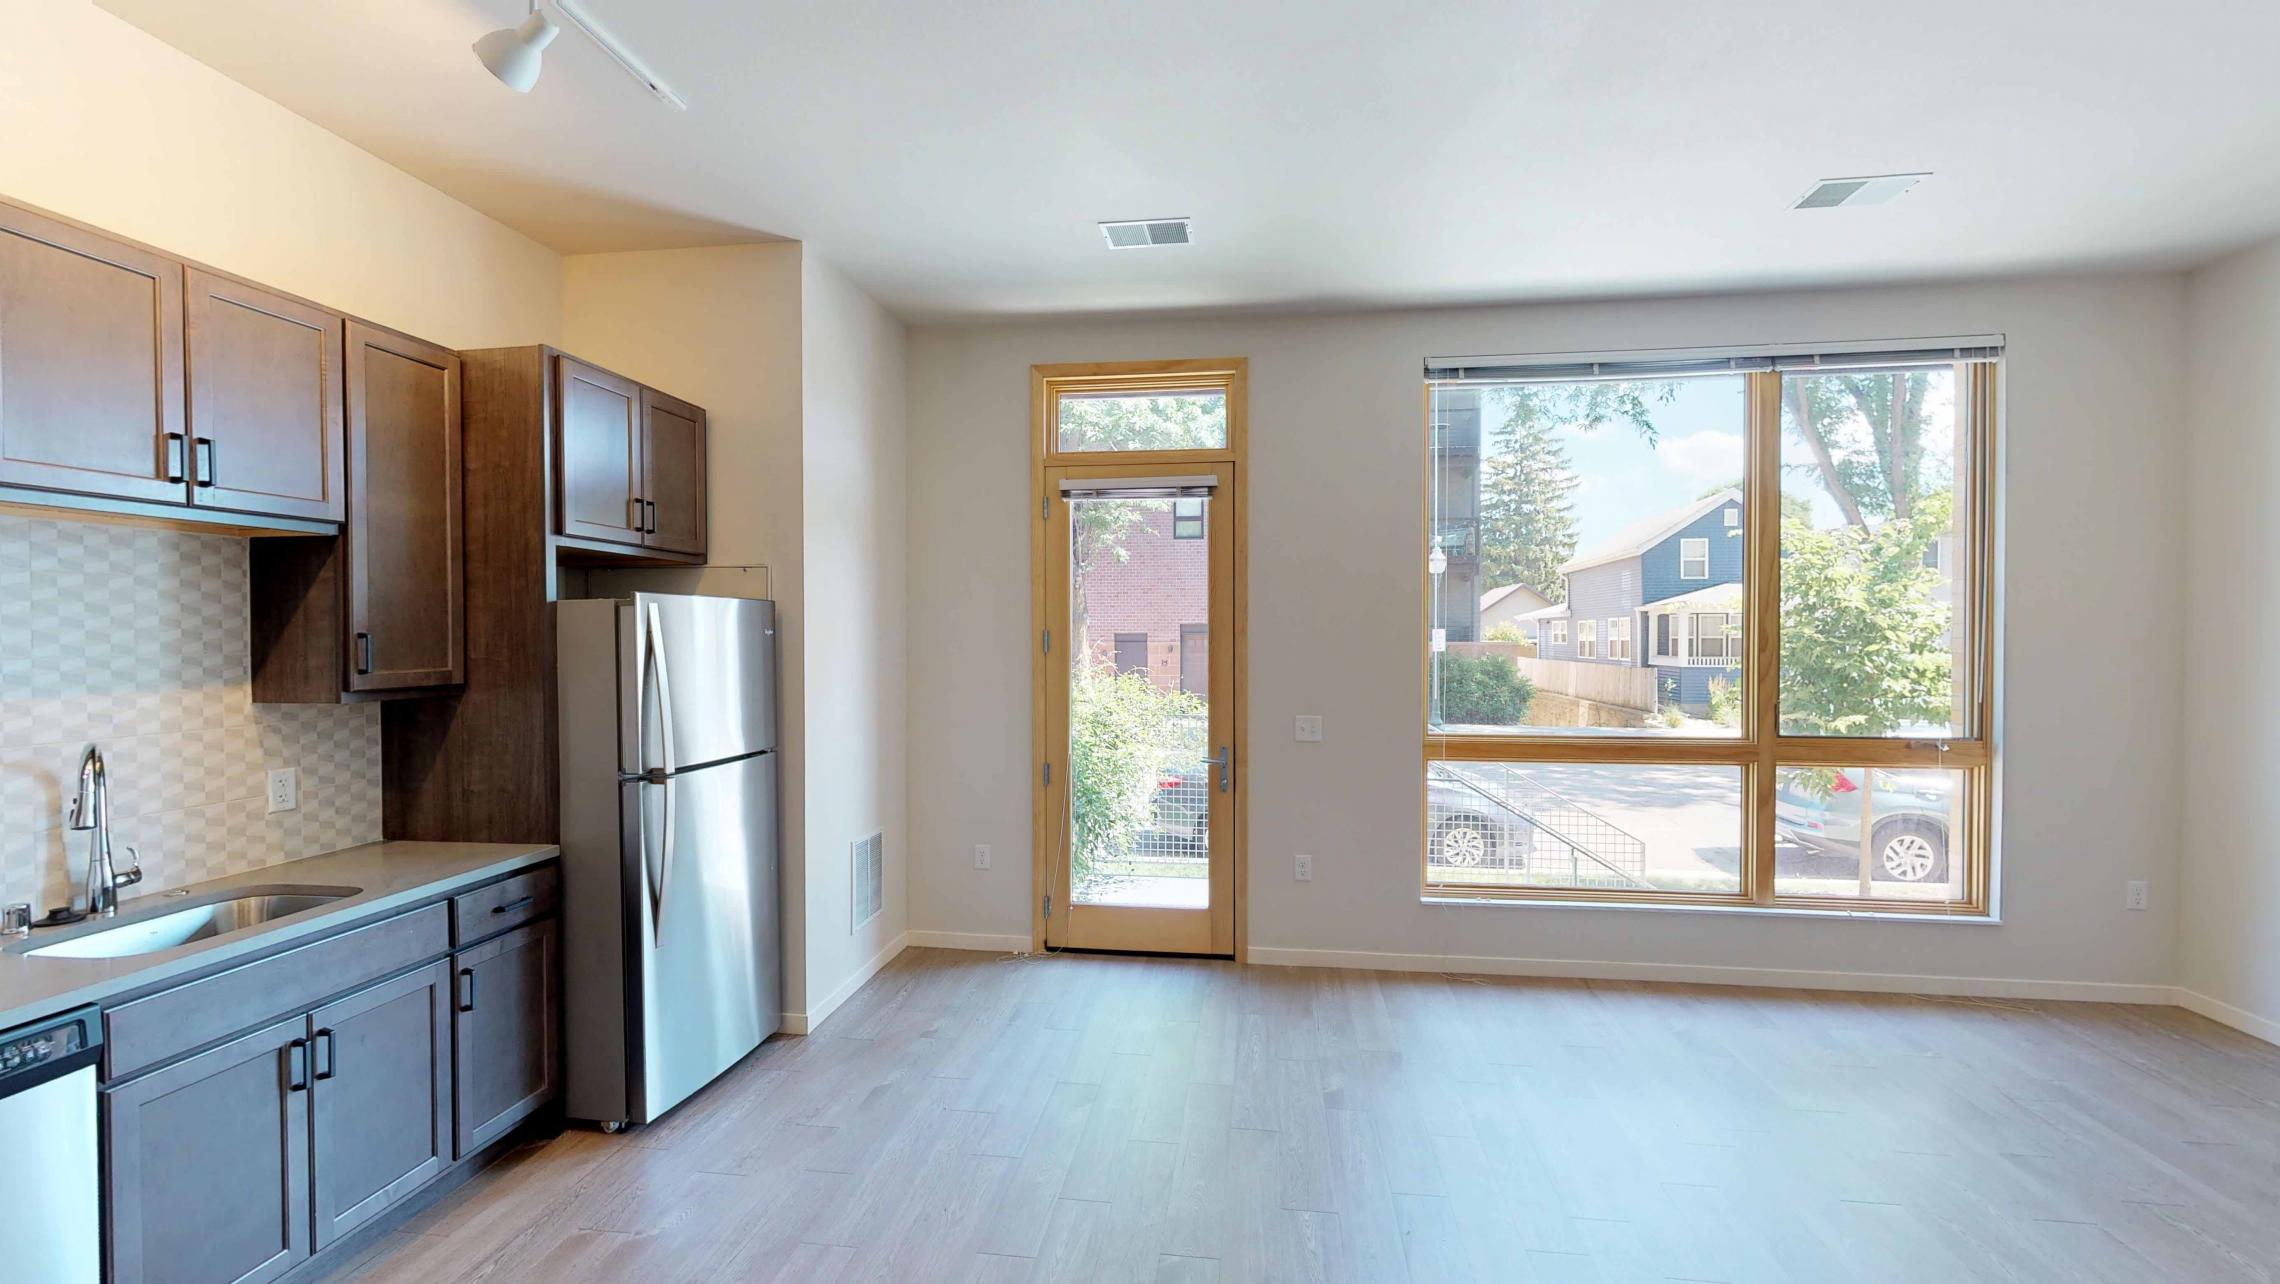 Quarter-Row-Apartments-Downtown-Madison-Capitol-Lake-Views-Balcony-Sun-Terrace-Courtyard-Fireplace-Dogs-Cats-Modern-Upscale-Apartment-109-One-Bedroom-Walk-Up